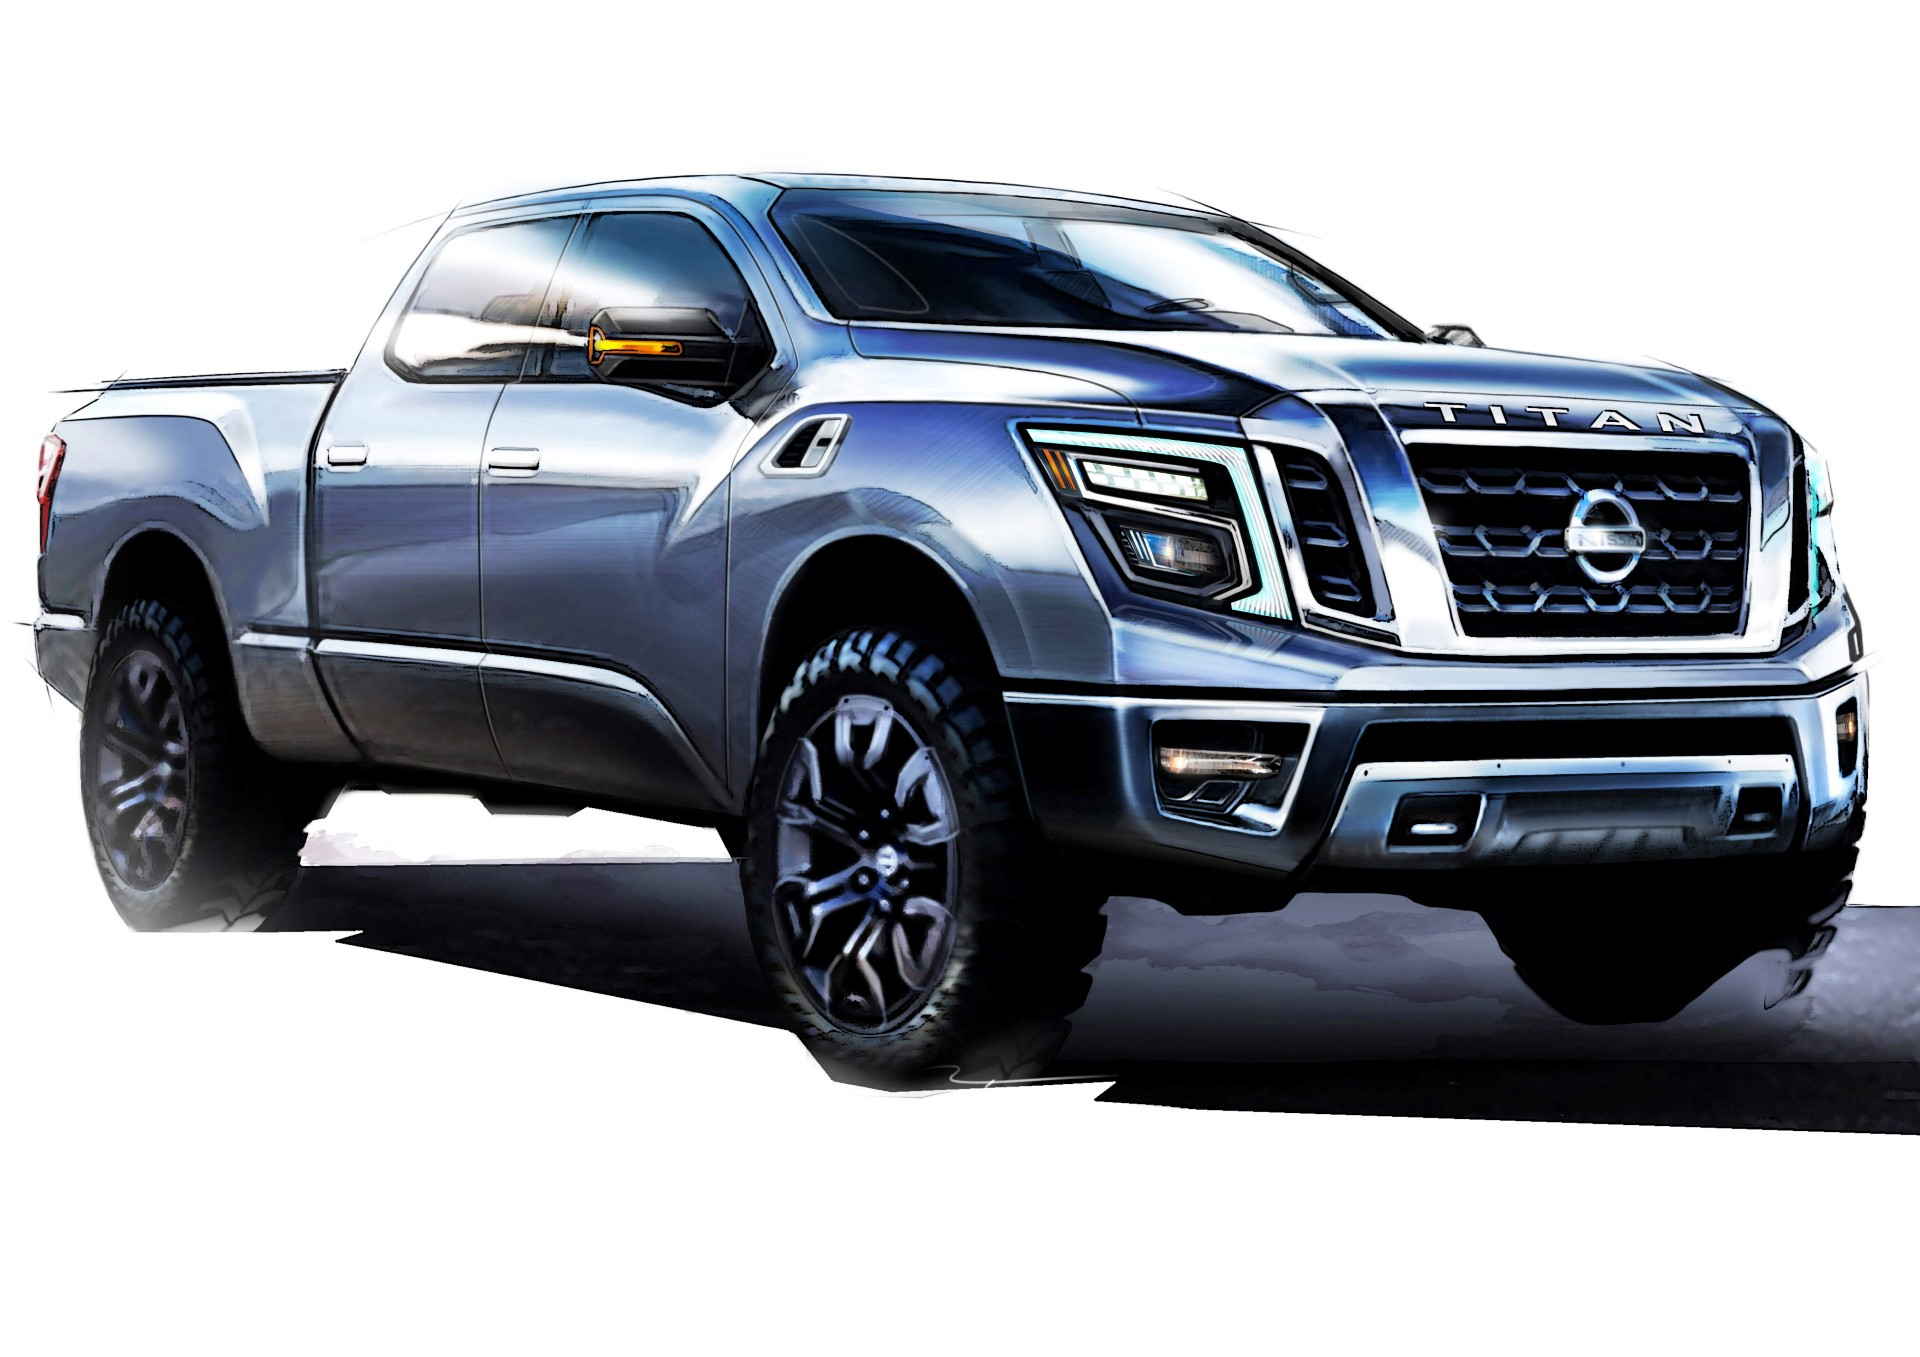 2016 nissan armada pictures information and specs auto. Black Bedroom Furniture Sets. Home Design Ideas